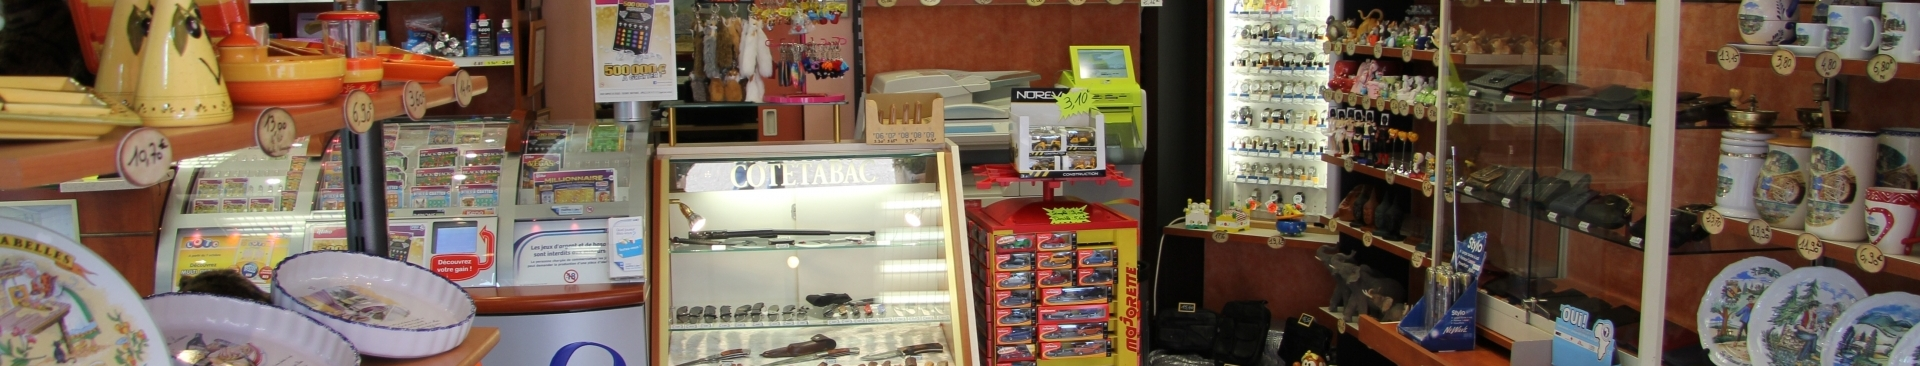 Magasin_20130630_05